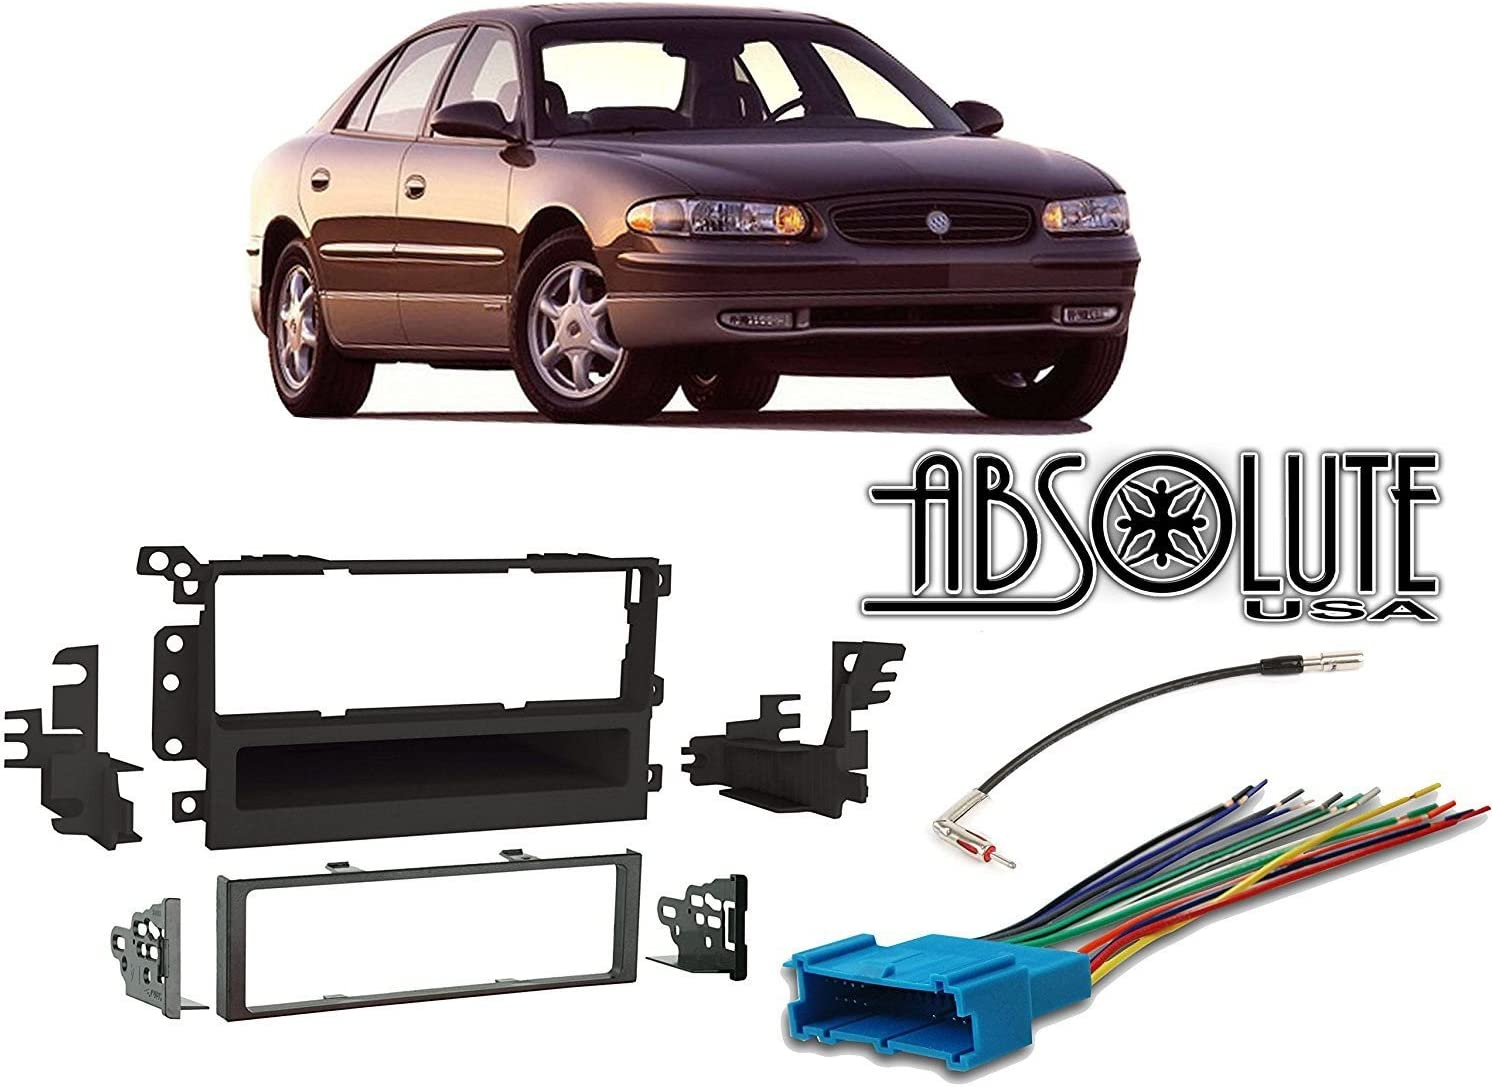 ABSOLUTE USA ABS99-2009 Fits Buick Century 1997-2003 Single DIN Stereo Harness Radio Install Dash Kit